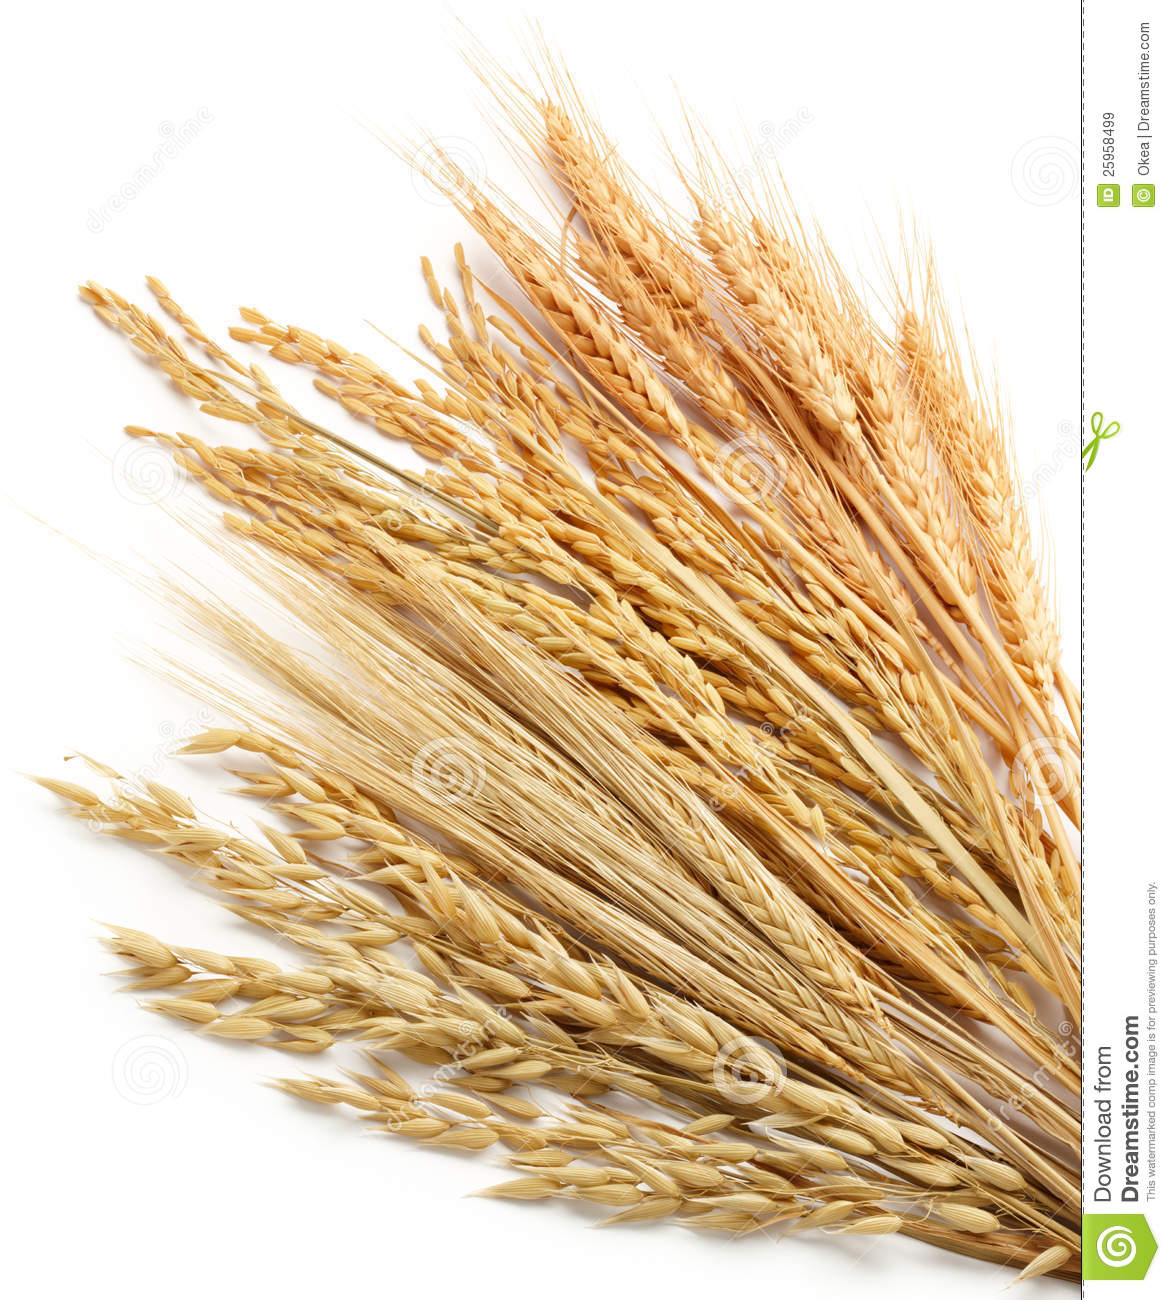 Viewing Gallery For - Barley Plant